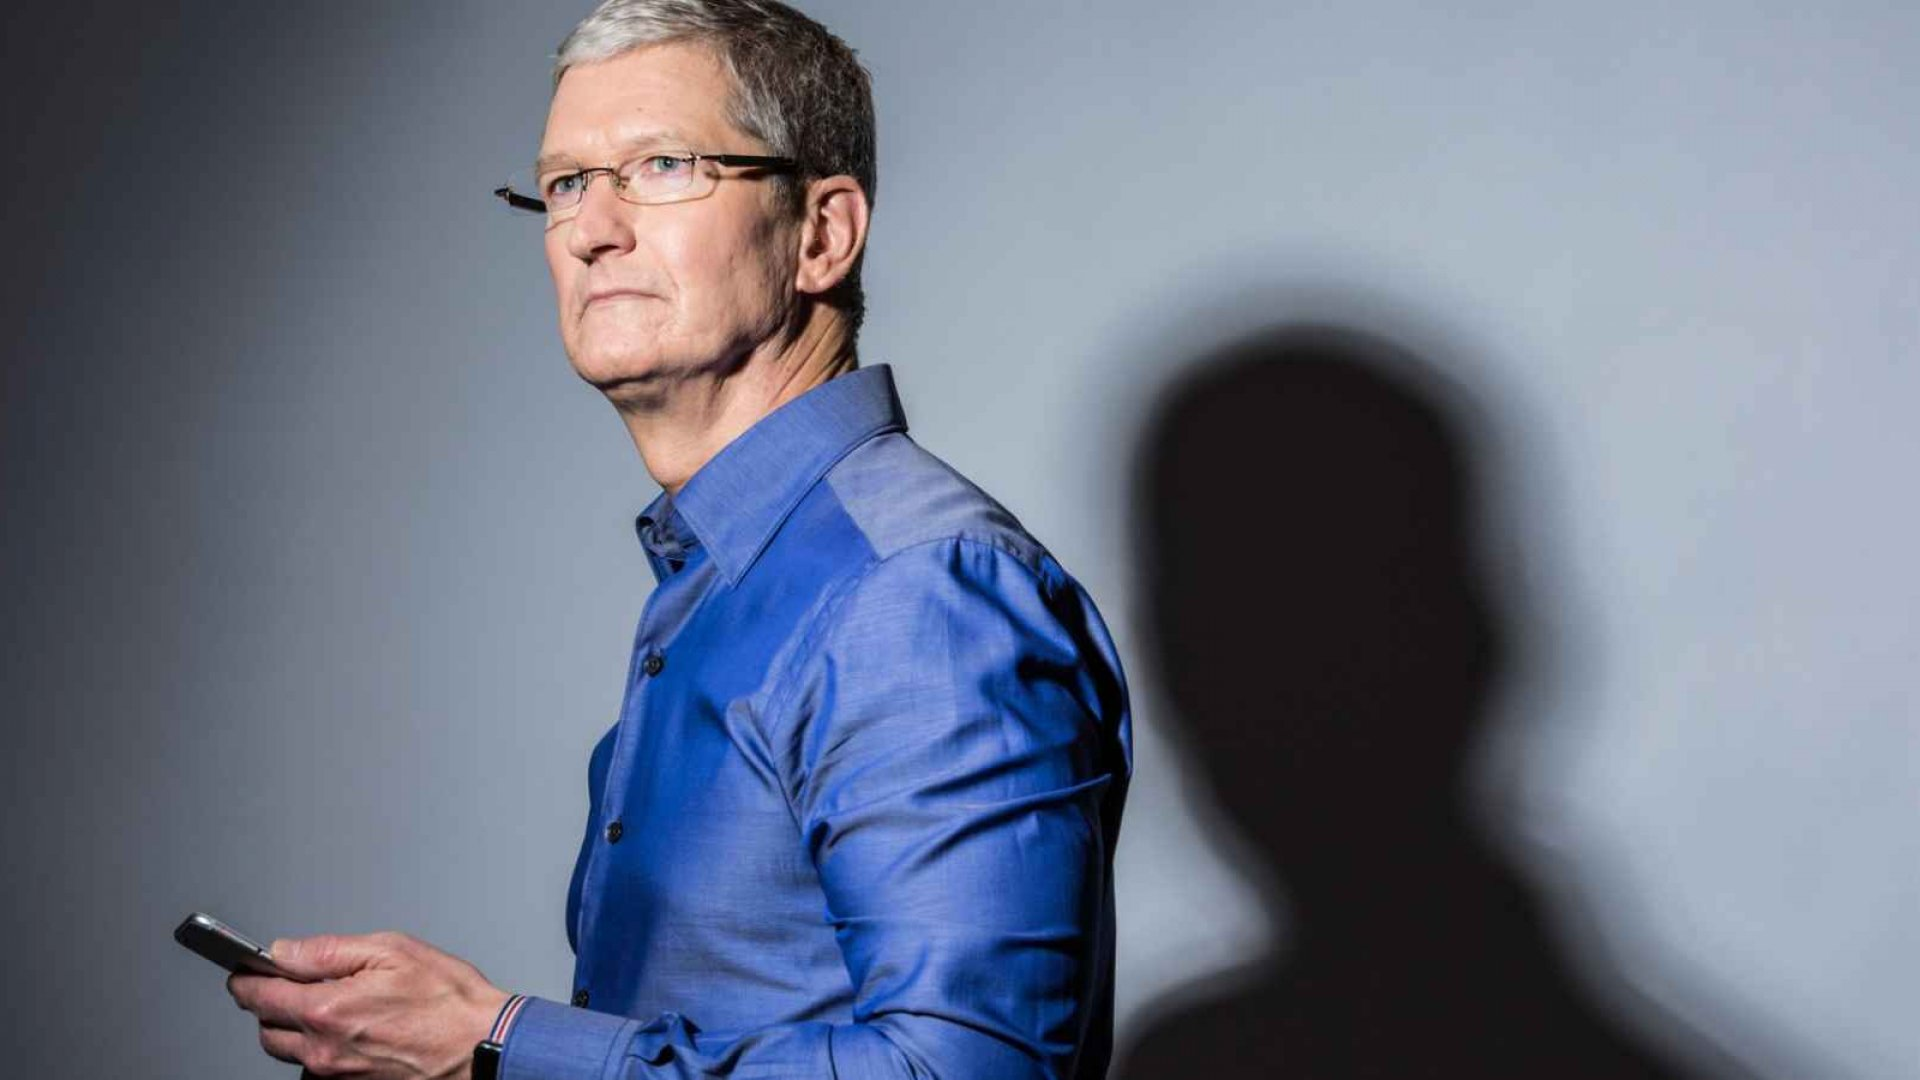 Apple's Tim Cook Says Being a CEO Is a 'Lonely Job.' Here's How to Solve That Problem